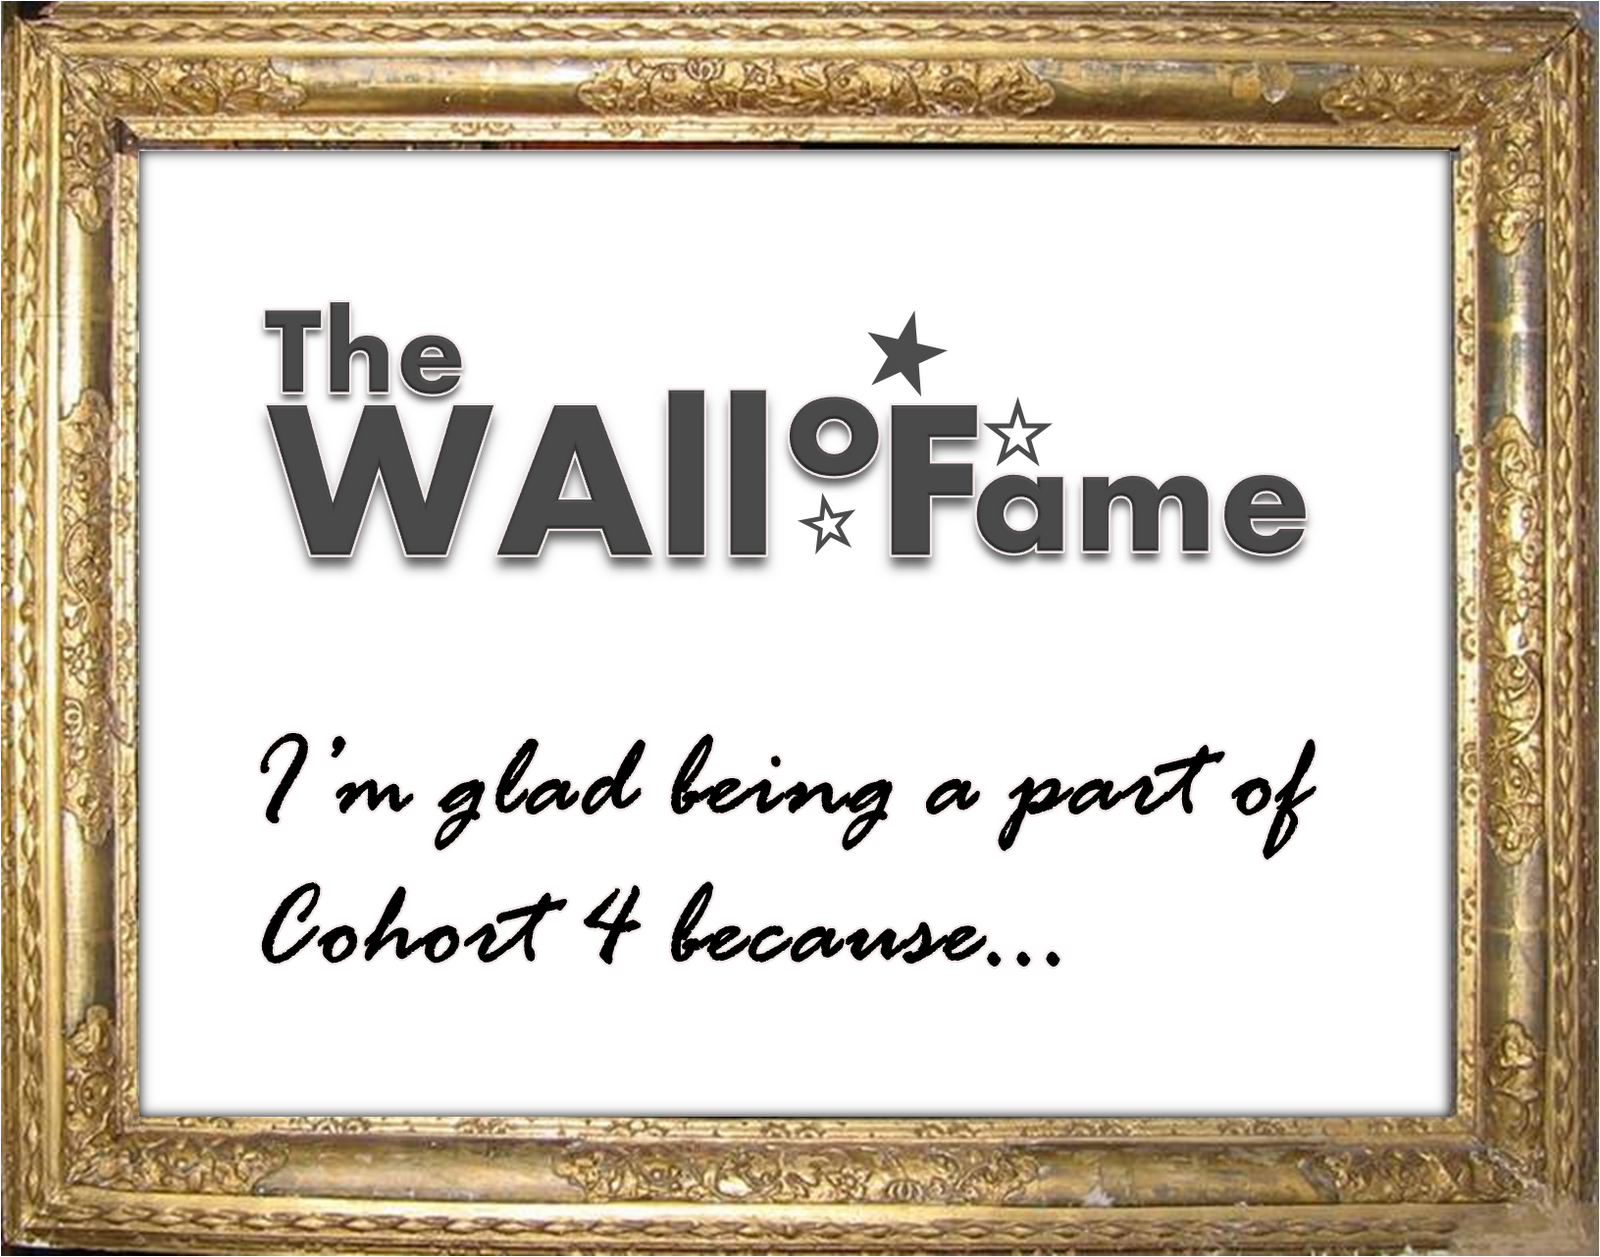 reaching the stars the wall of fame i 39 m glad being a part of cohort 4 because. Black Bedroom Furniture Sets. Home Design Ideas